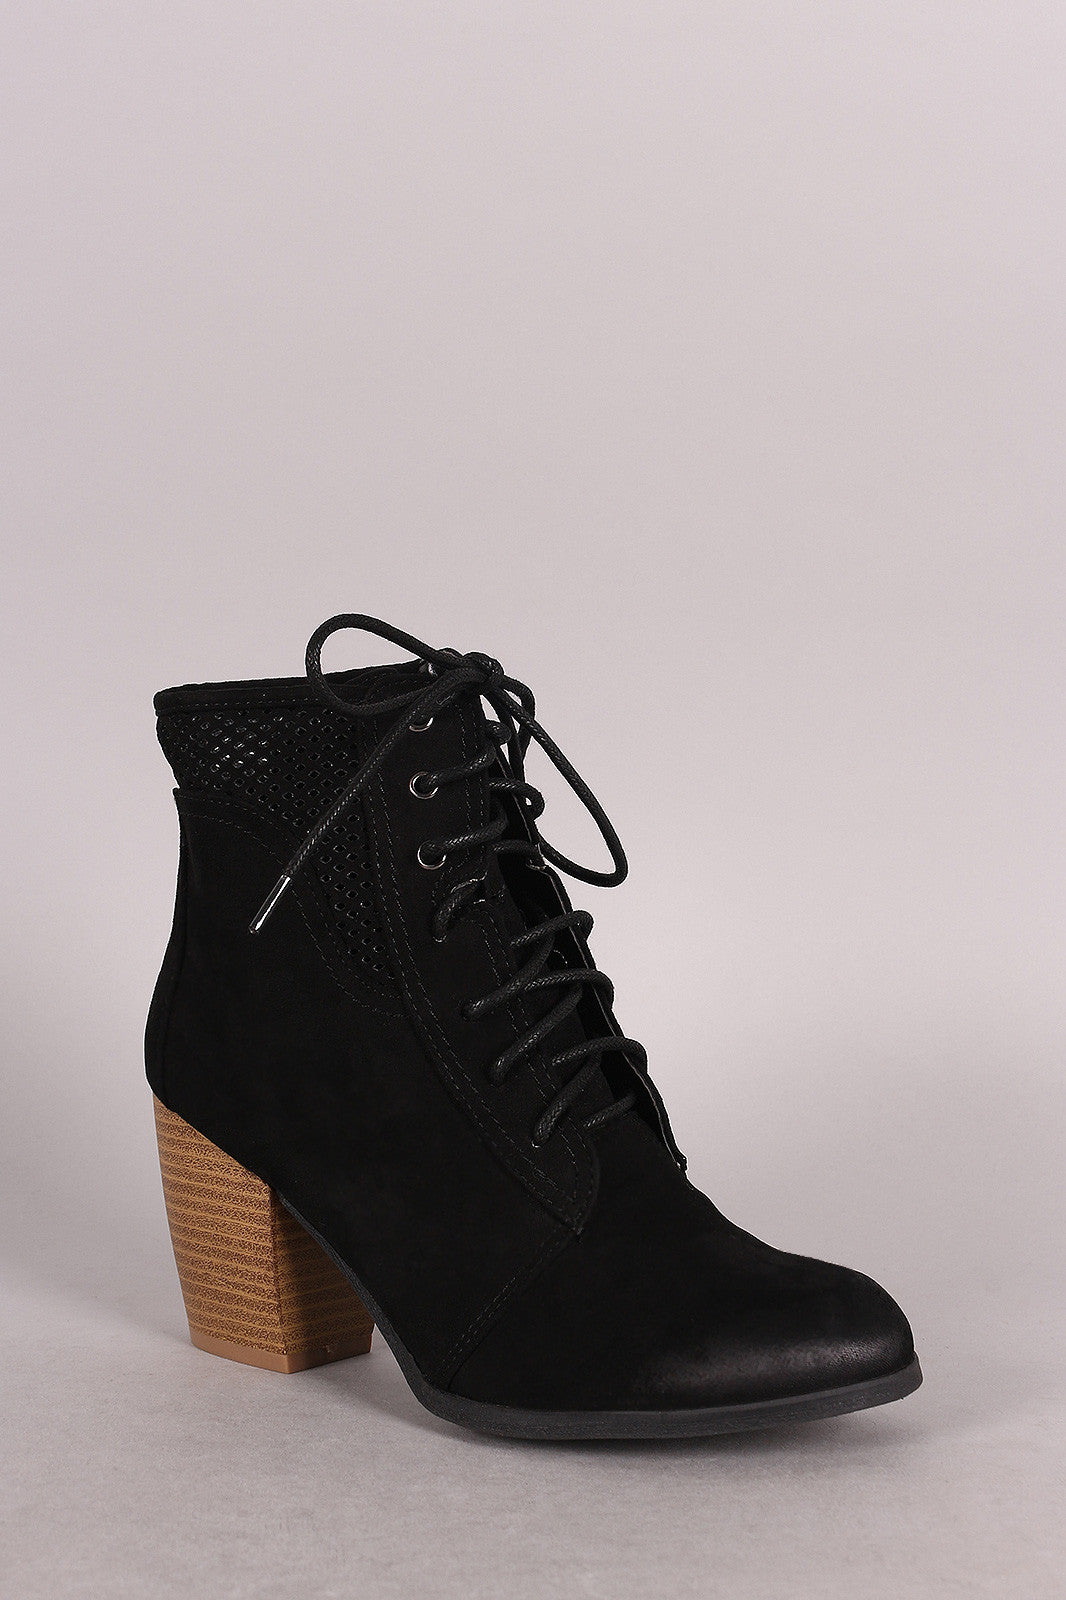 Qupid Spring Perforated Combat Booties - Thick 'N' Curvy Shop - 1